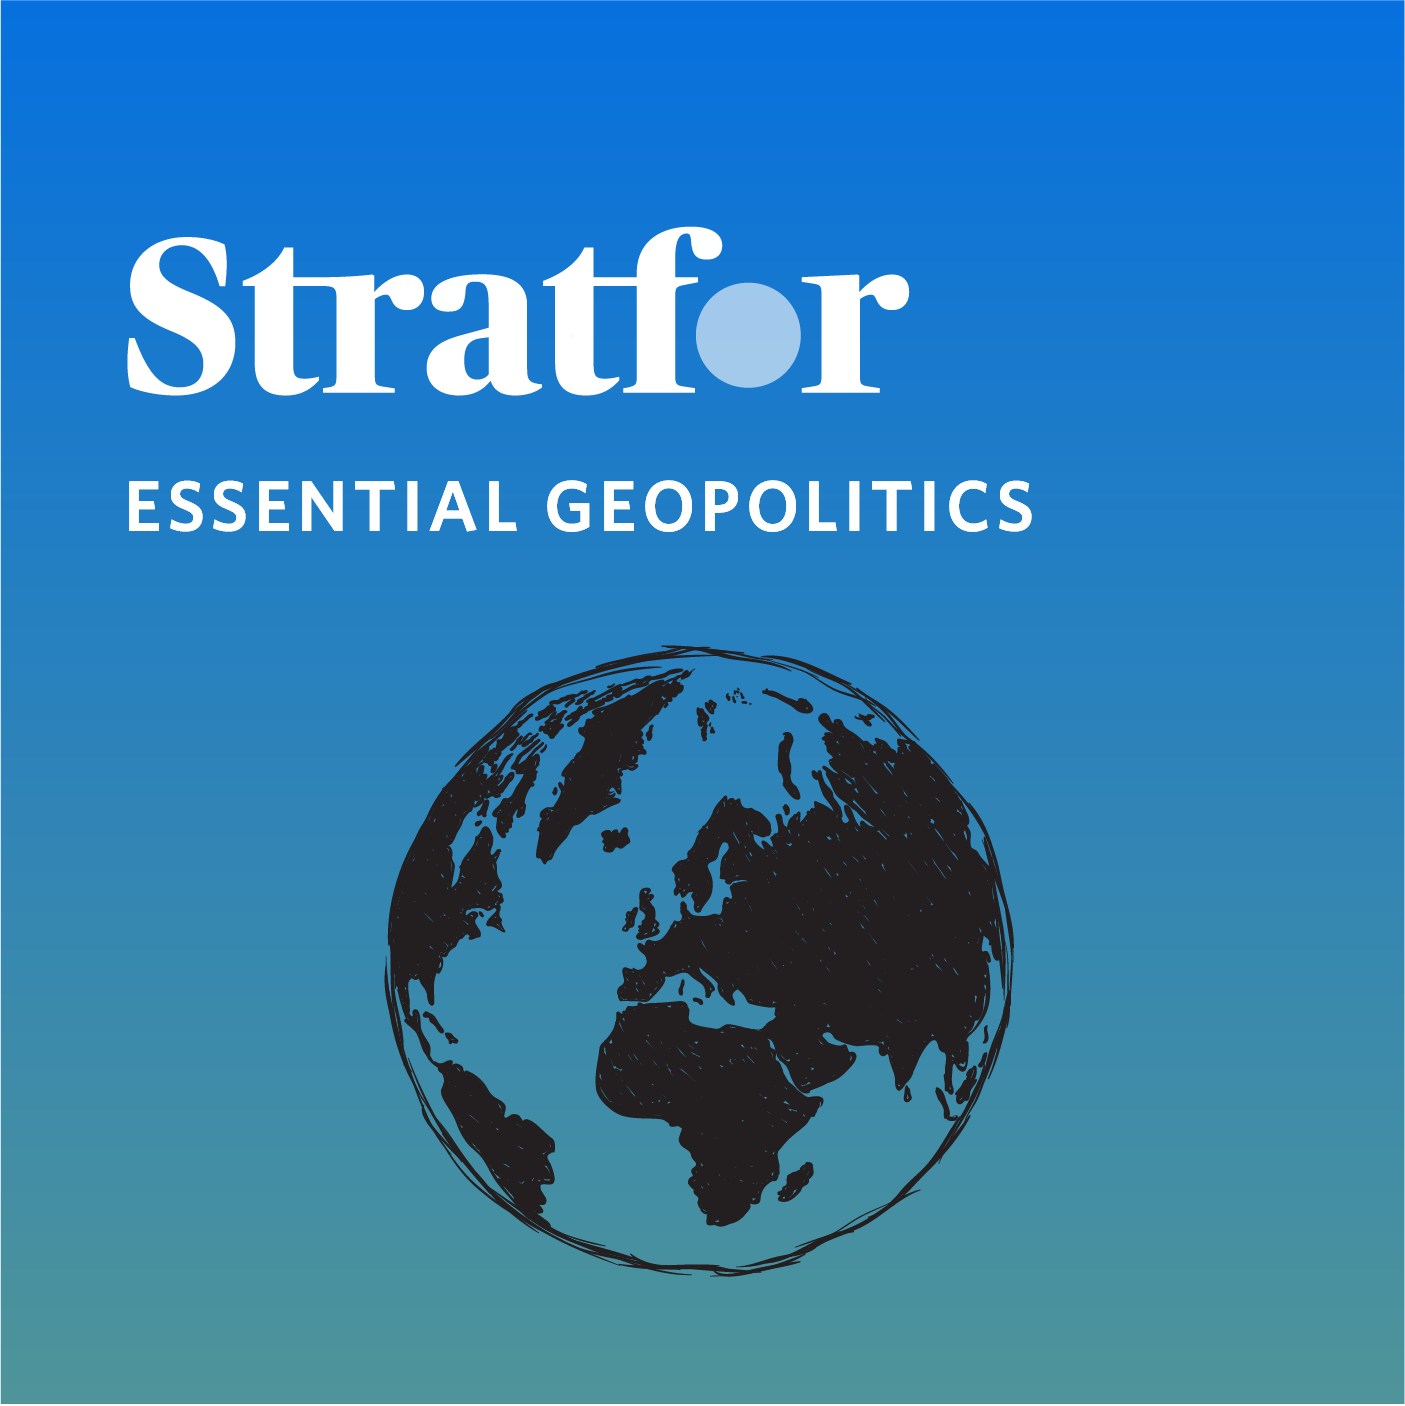 Essential Geopolitics: After A Brexit Trade Deal, Then What?